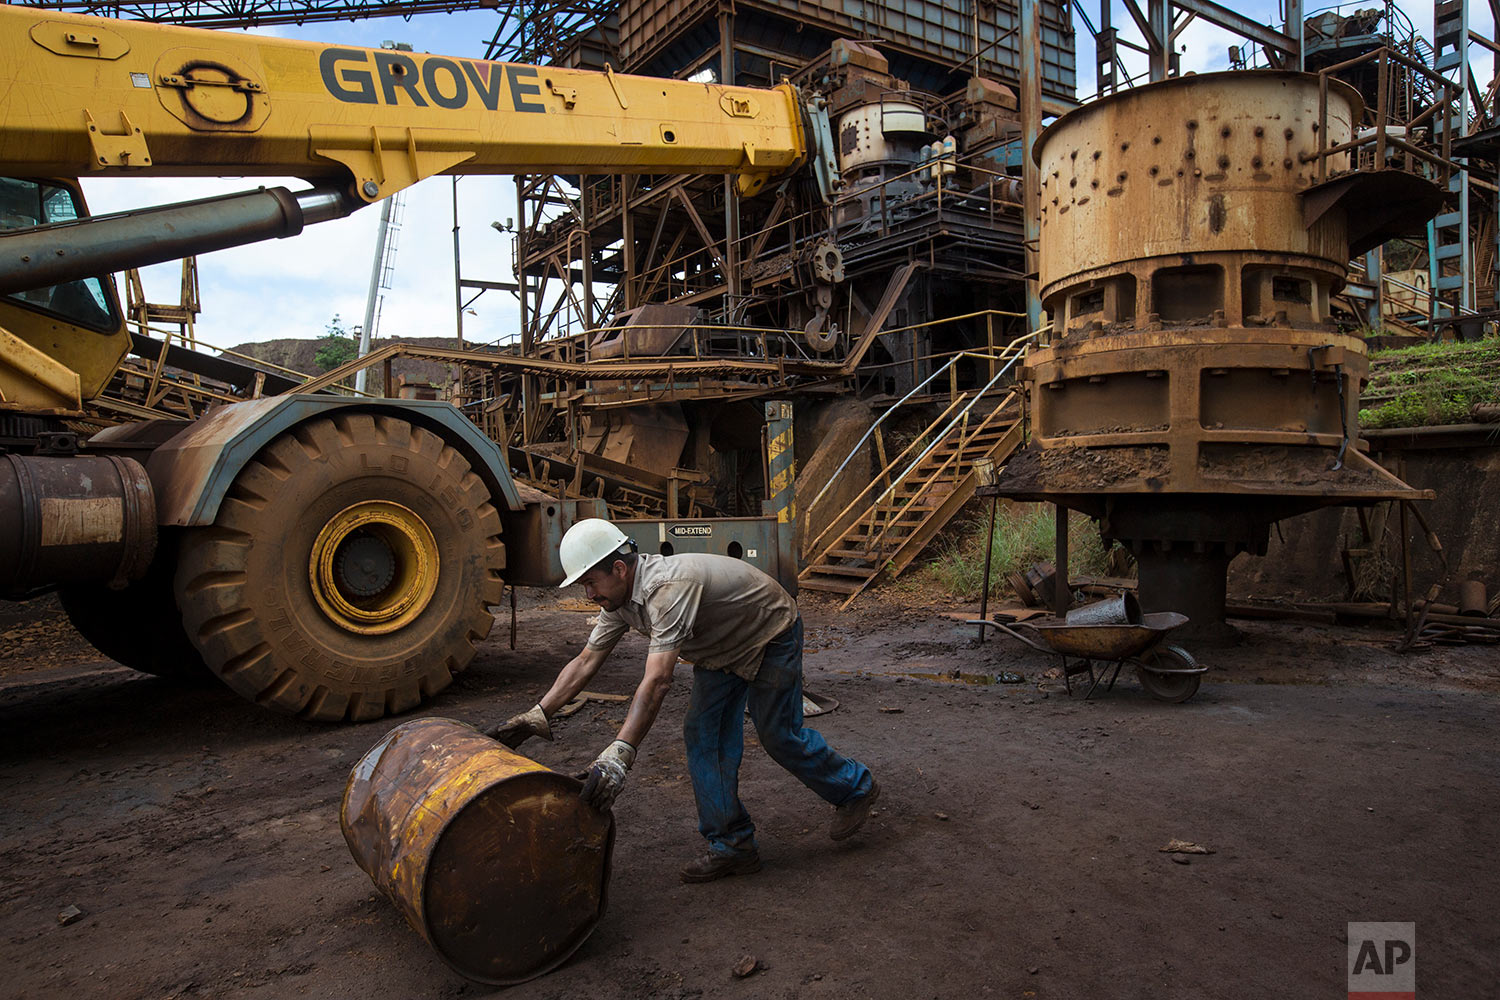 In this Nov. 2, 2017 photo, a Ferrominera Orinoco worker rolls a an empty barrel in Ciudad Piar, Bolivar state, Venezuela. Venezuela sits atop the world's largest oil reserves, but low crude prices and a plunge in production has left it in an economic free fall. (AP Photo/Rodrigo Abd)